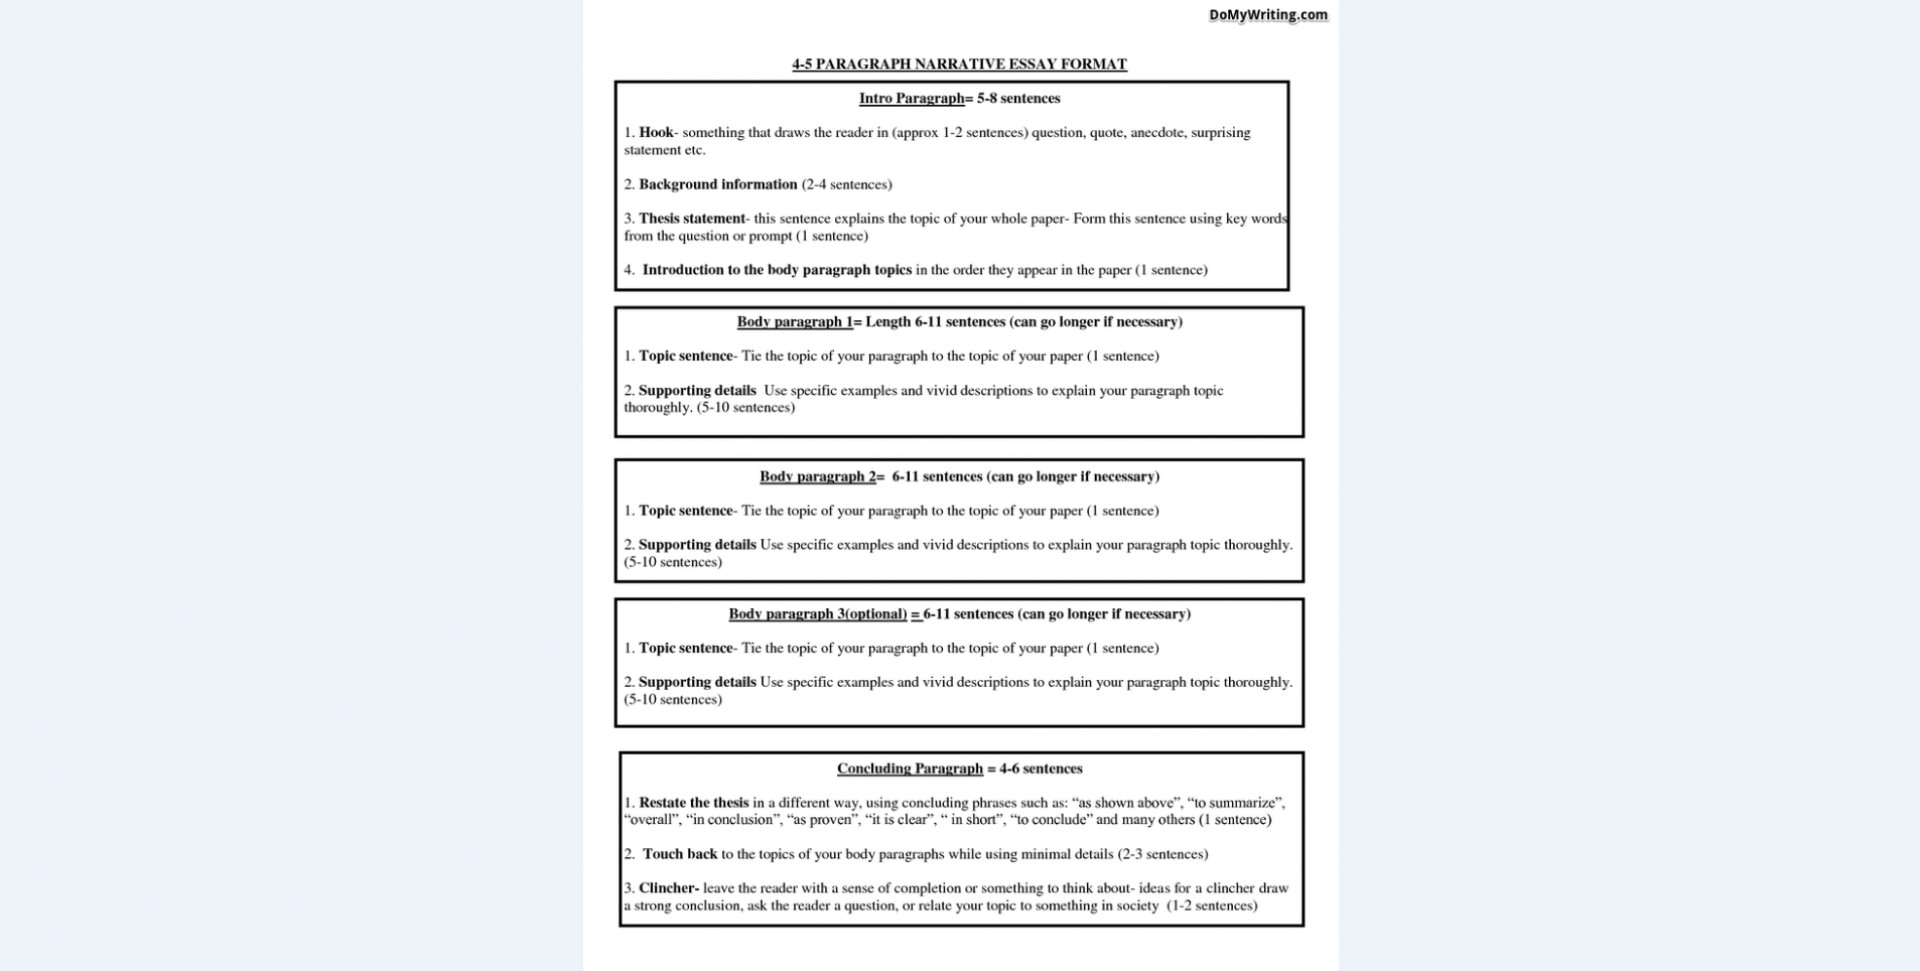 008 Narrative Essay Format Exceptional High School Graphic Organizer 4th Grade Pdf 1920